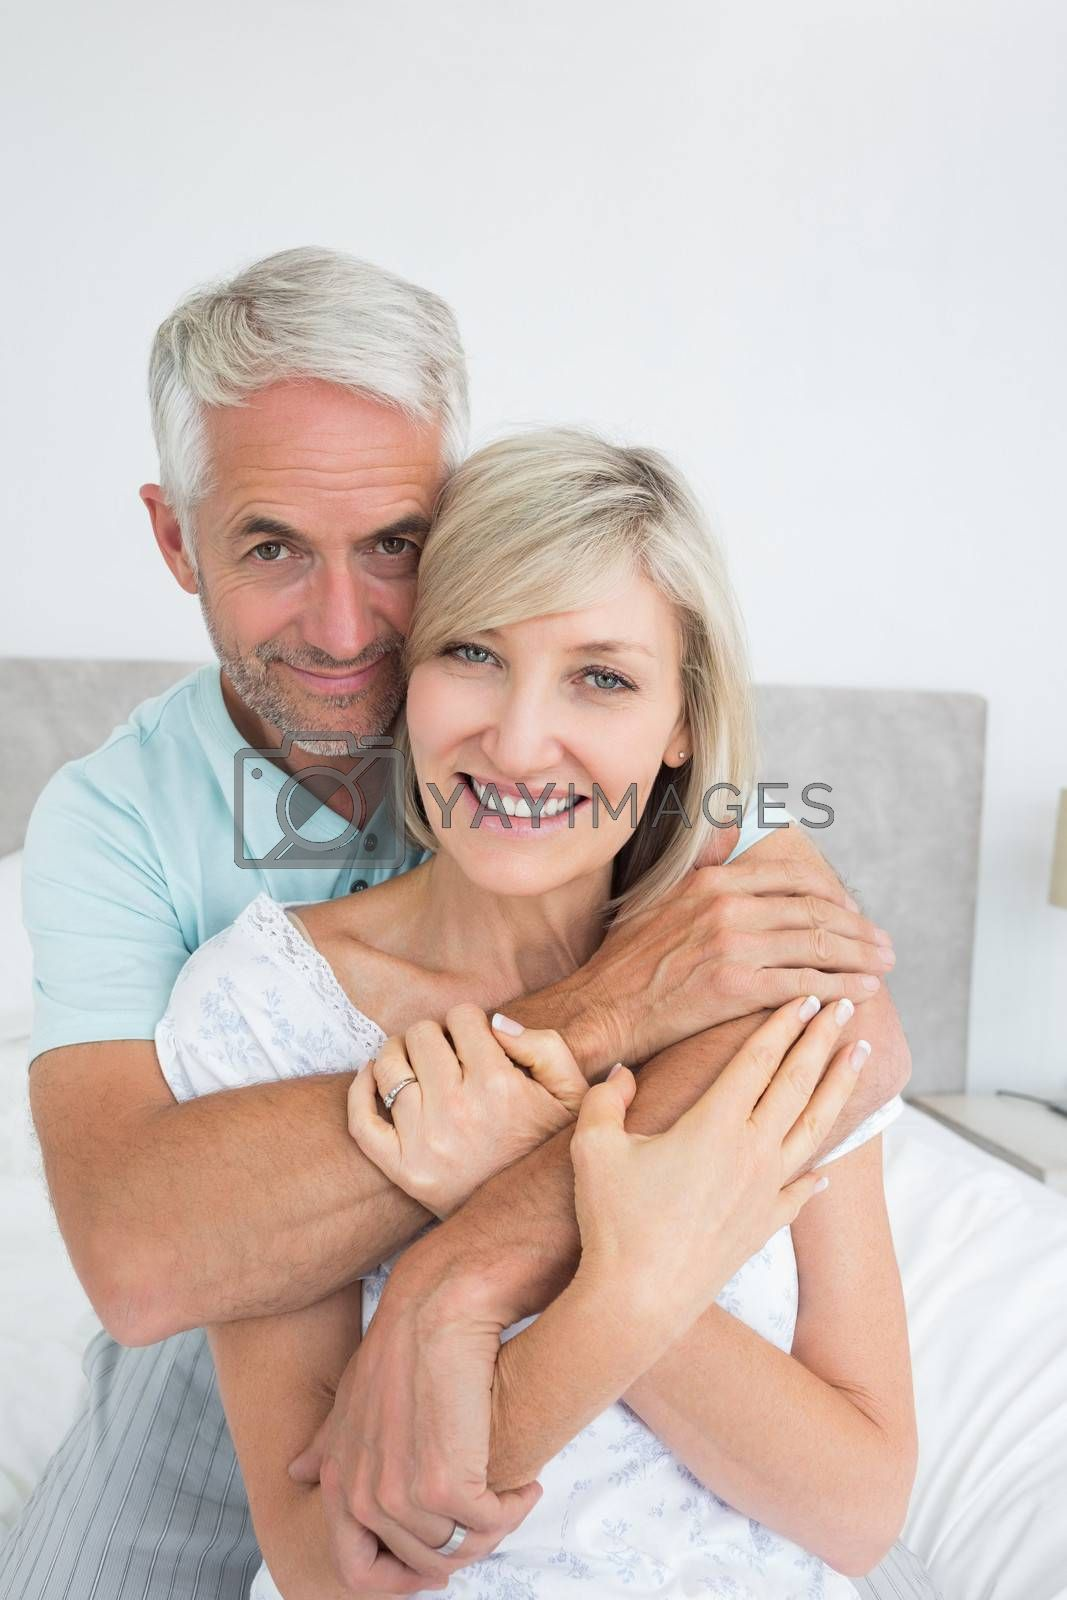 Closeup portrait of a loving mature man embracing woman in bed at home